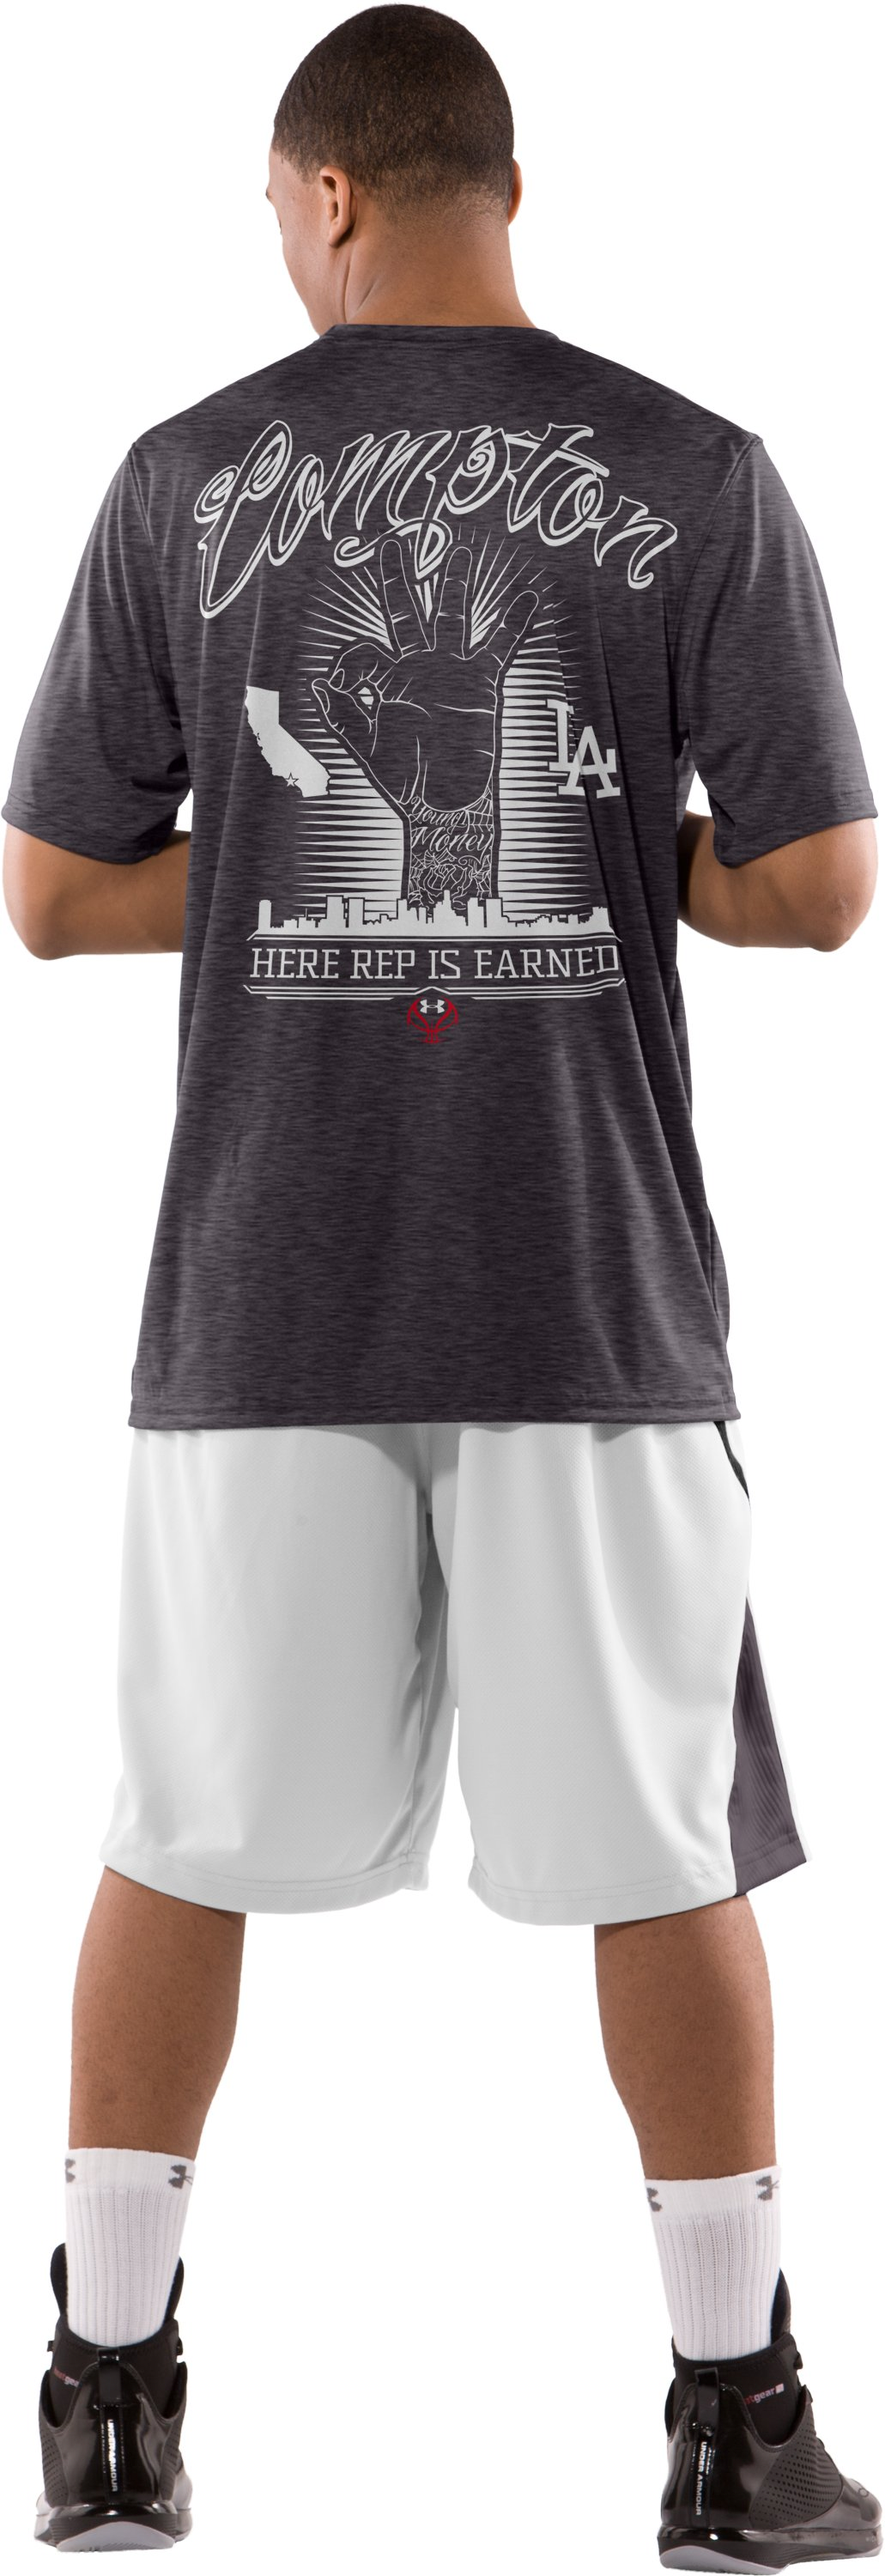 Men's Brandon Jennings Player Reppin' T-Shirt, Carbon Heather